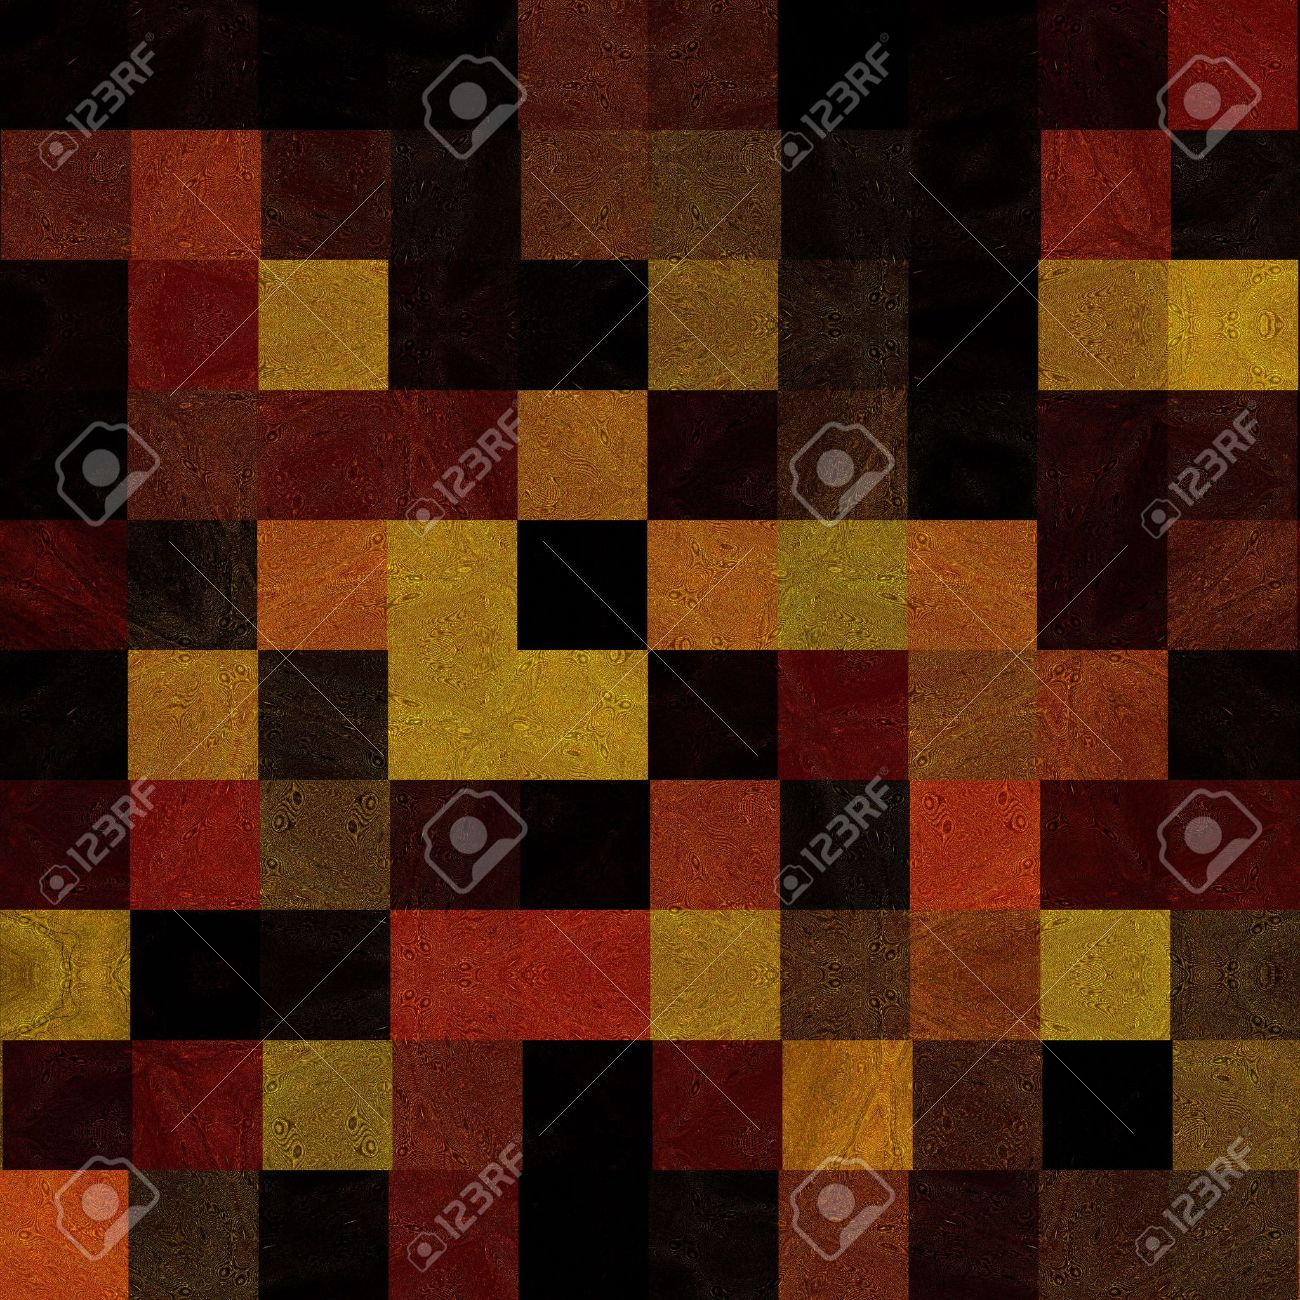 Rich, Earthy Colors Tile Mosaic Seamless Stock Photo - 5392233